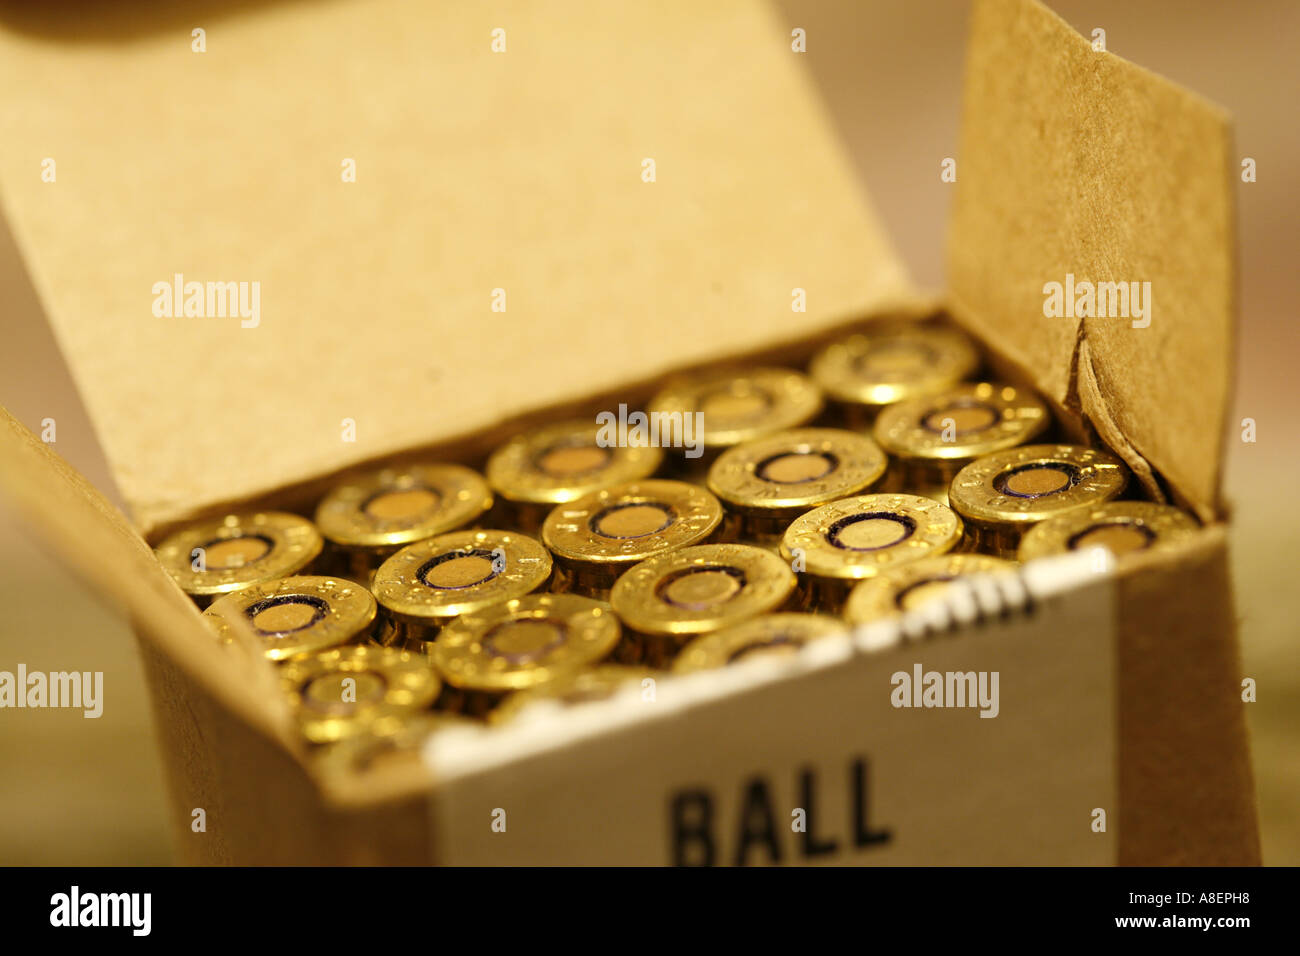 full open box of ammunition 308 762 rifle cartridge bullets live rounds - Stock Image